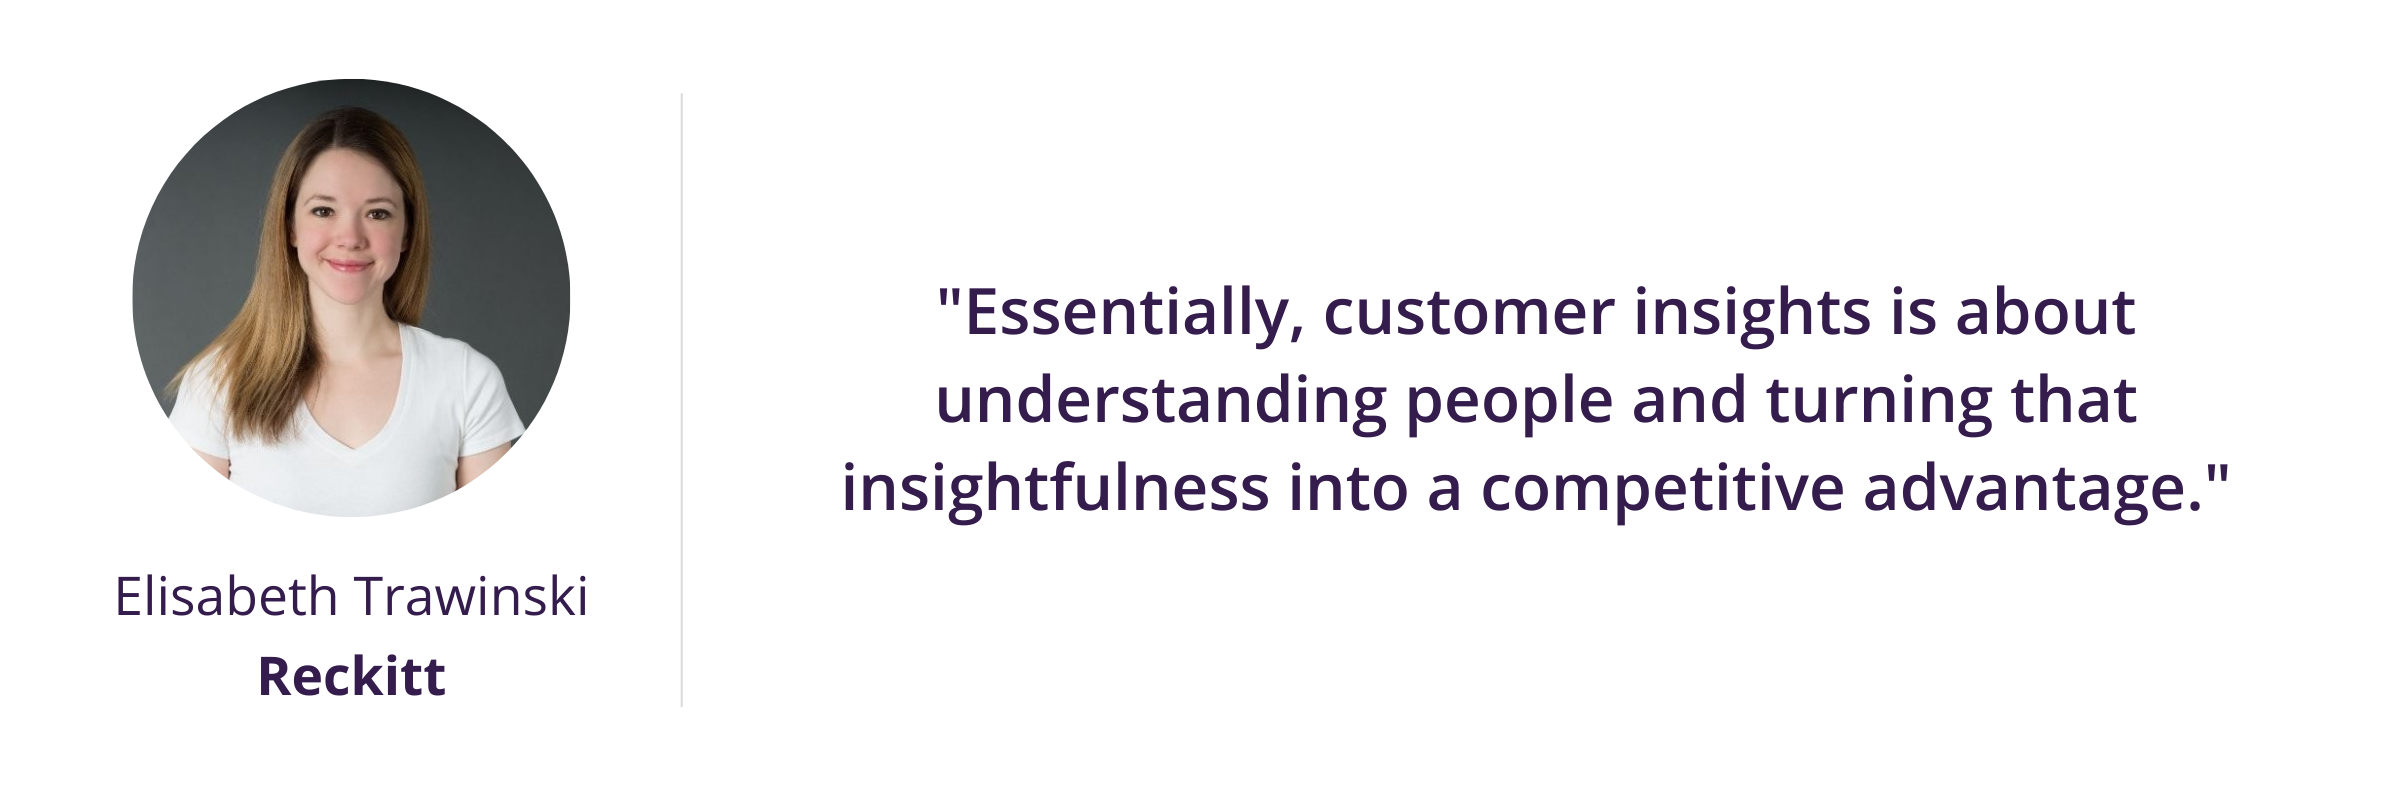 """""""Essentially, customer insights is about understanding people and turning that insightfulness into a competitive advantage."""""""